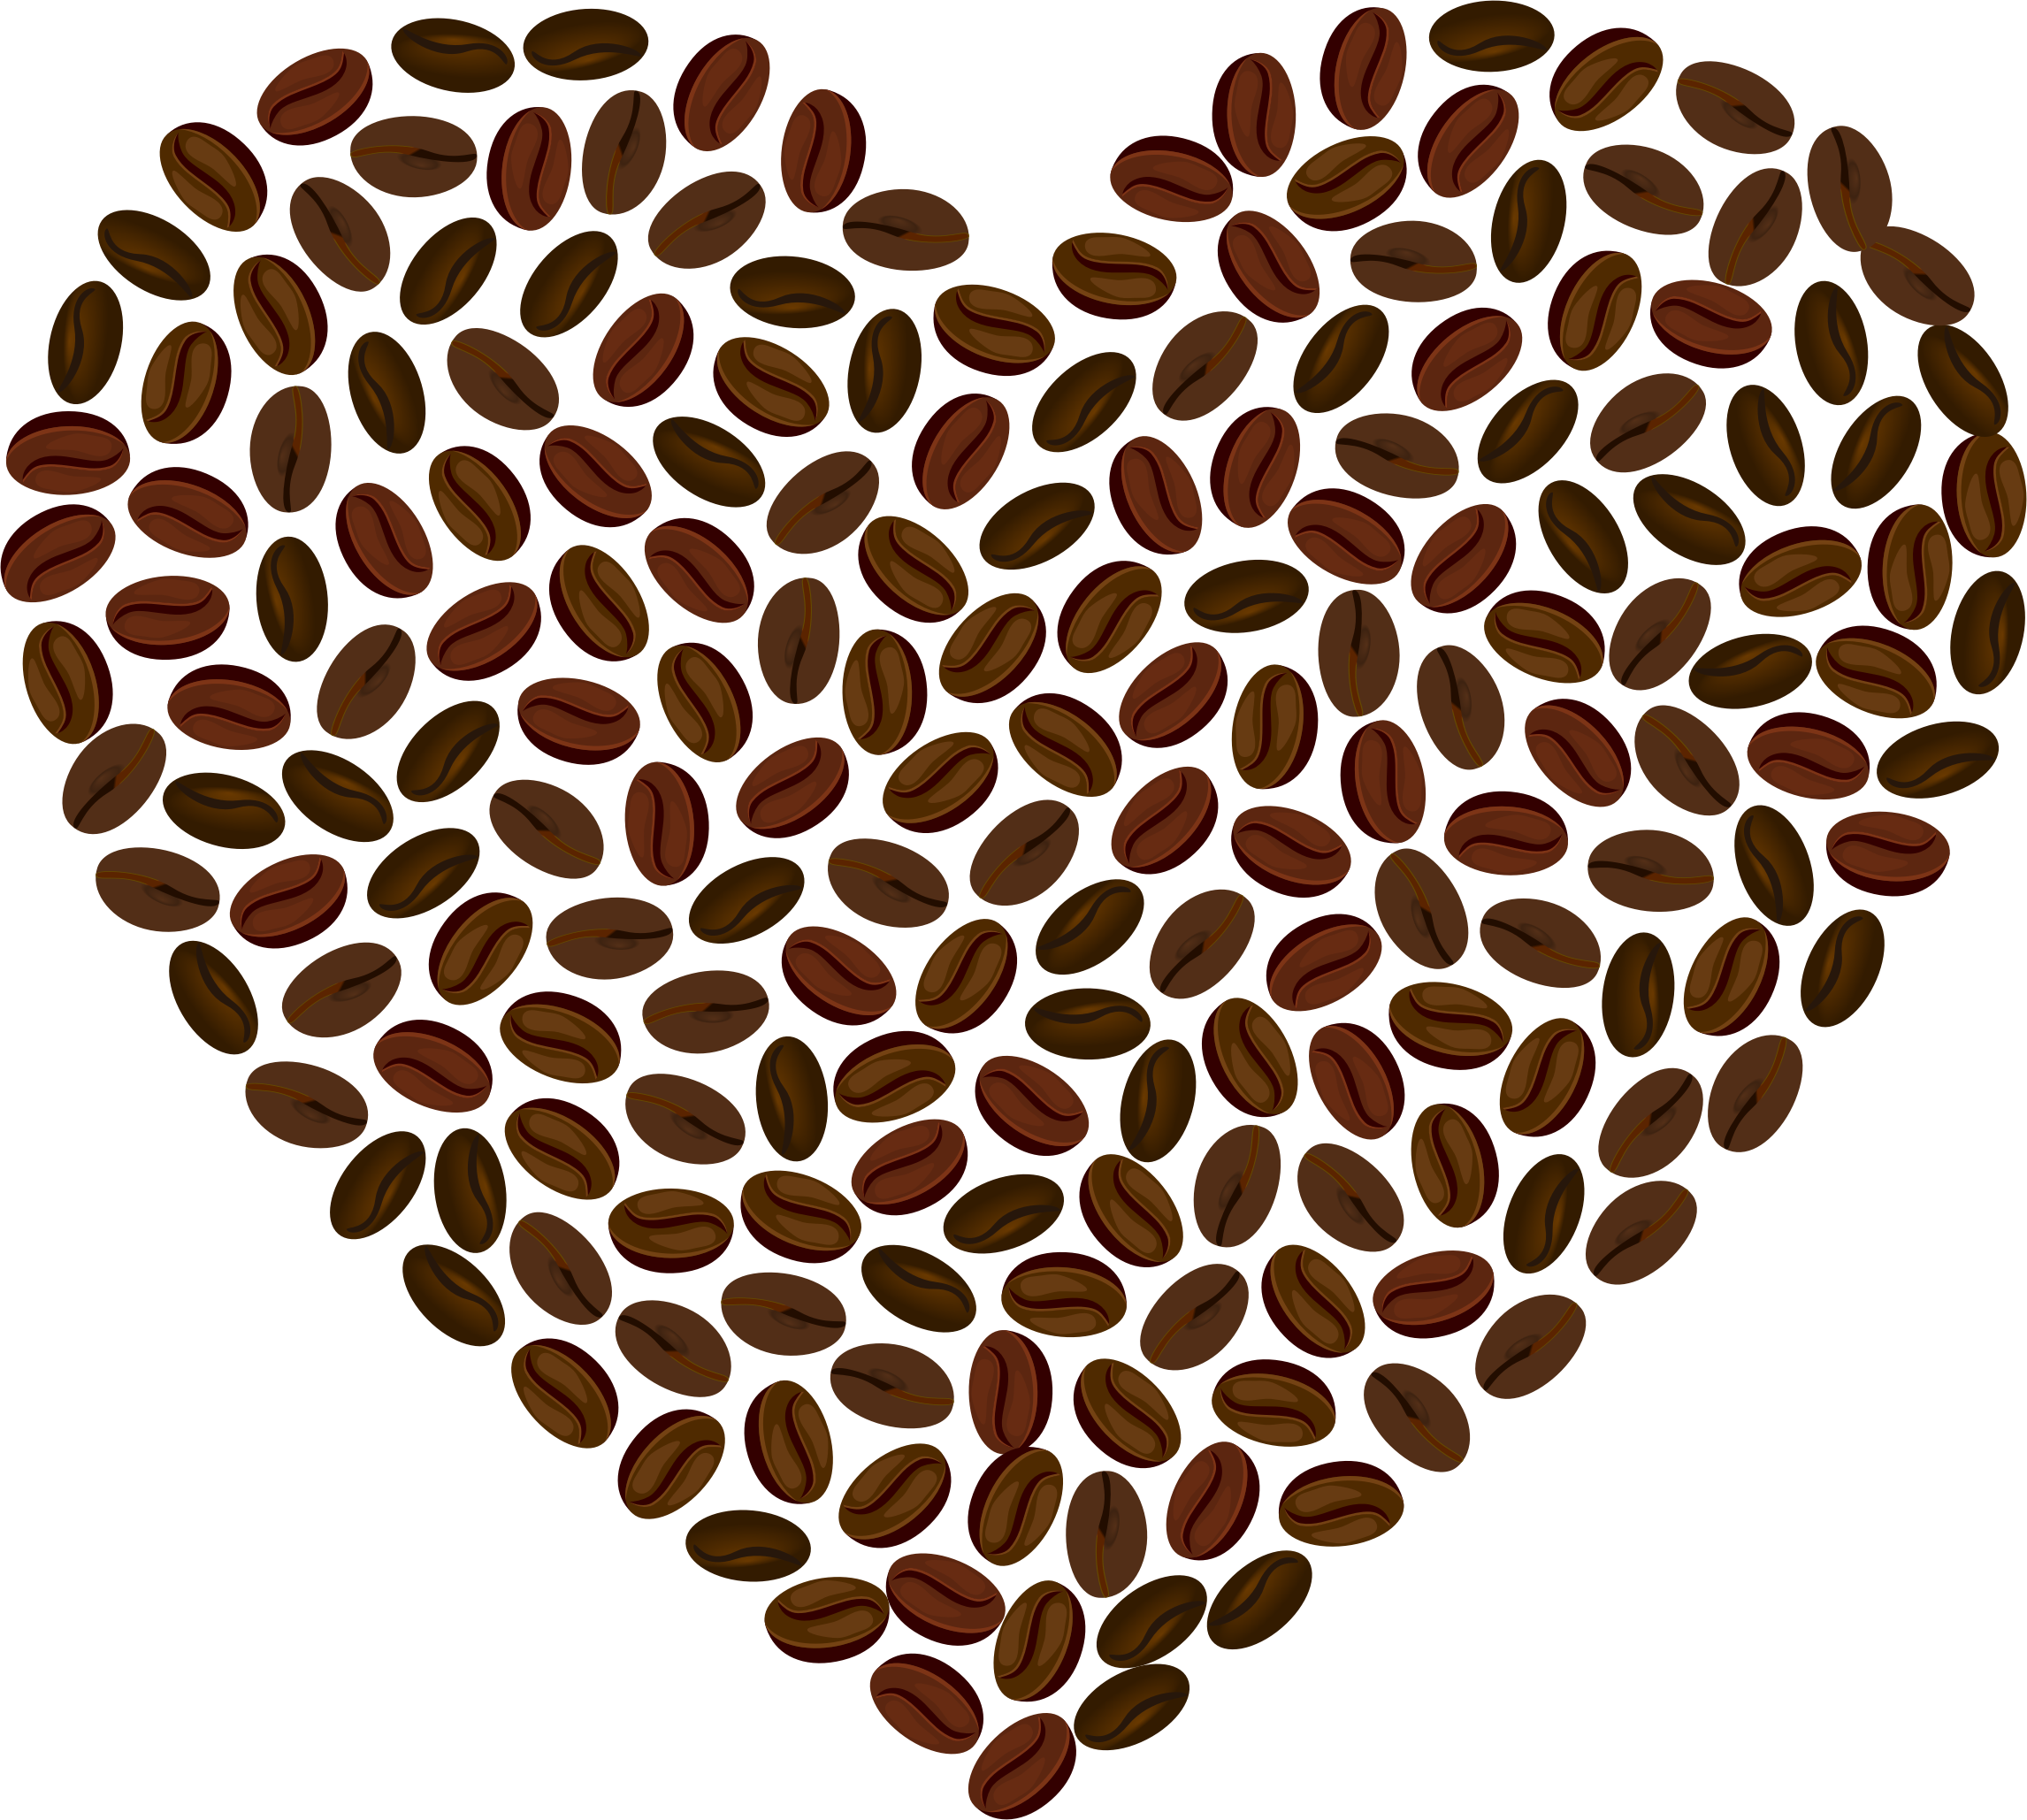 Heart big image png. Clipart coffee refreshment